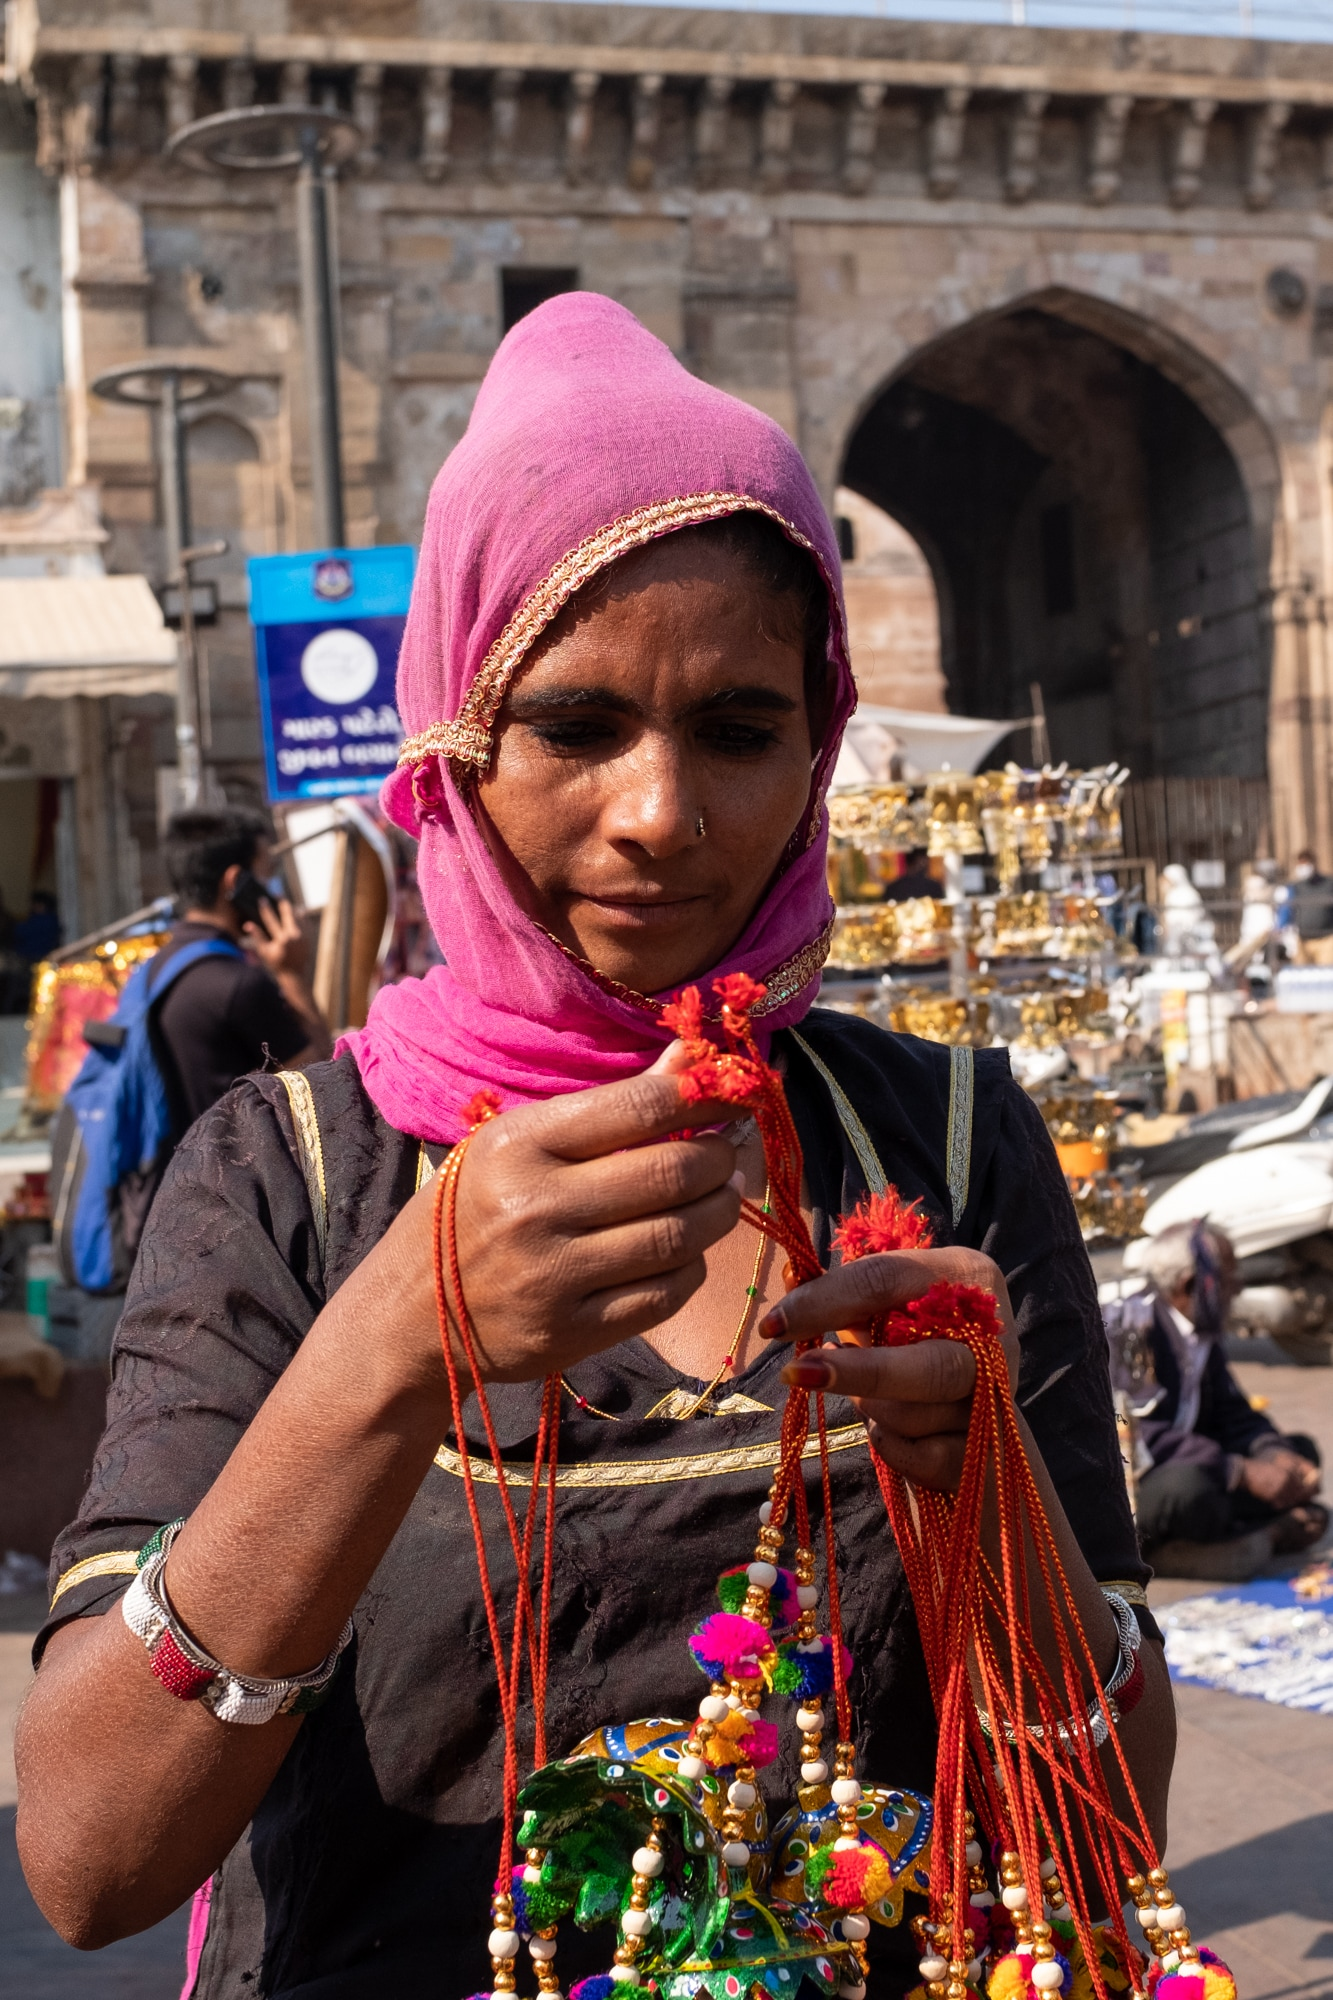 A street vendor showcases handmade wind chimes in front of the Bhadra Fort, Ahmedabad.